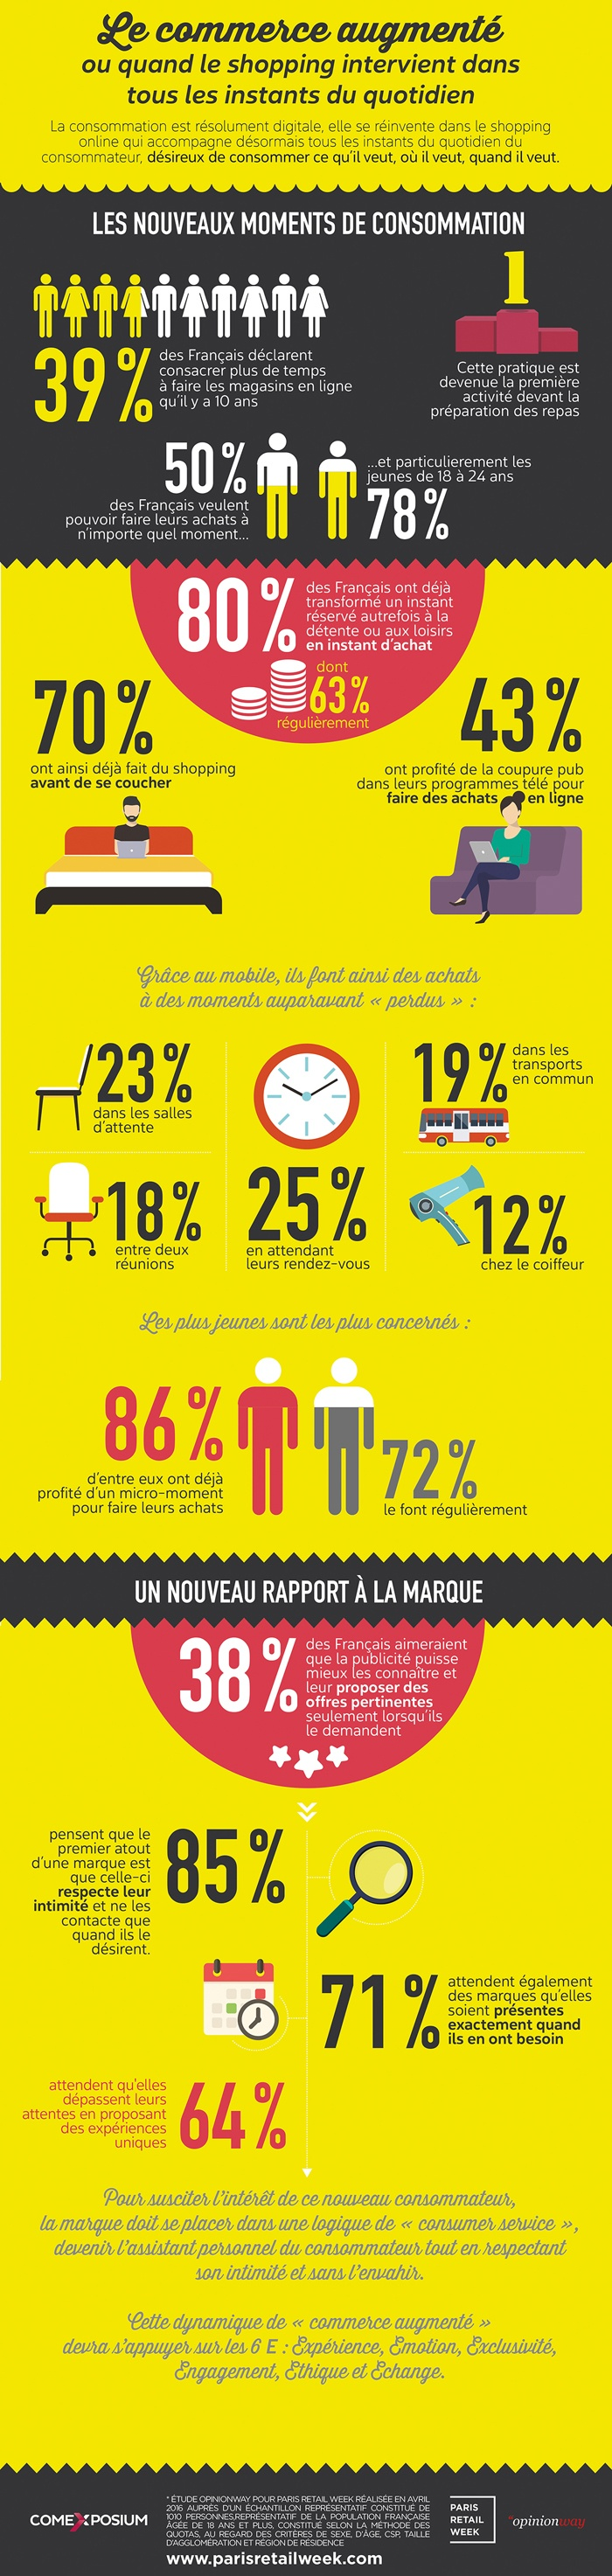 infographie tendance e-consommation